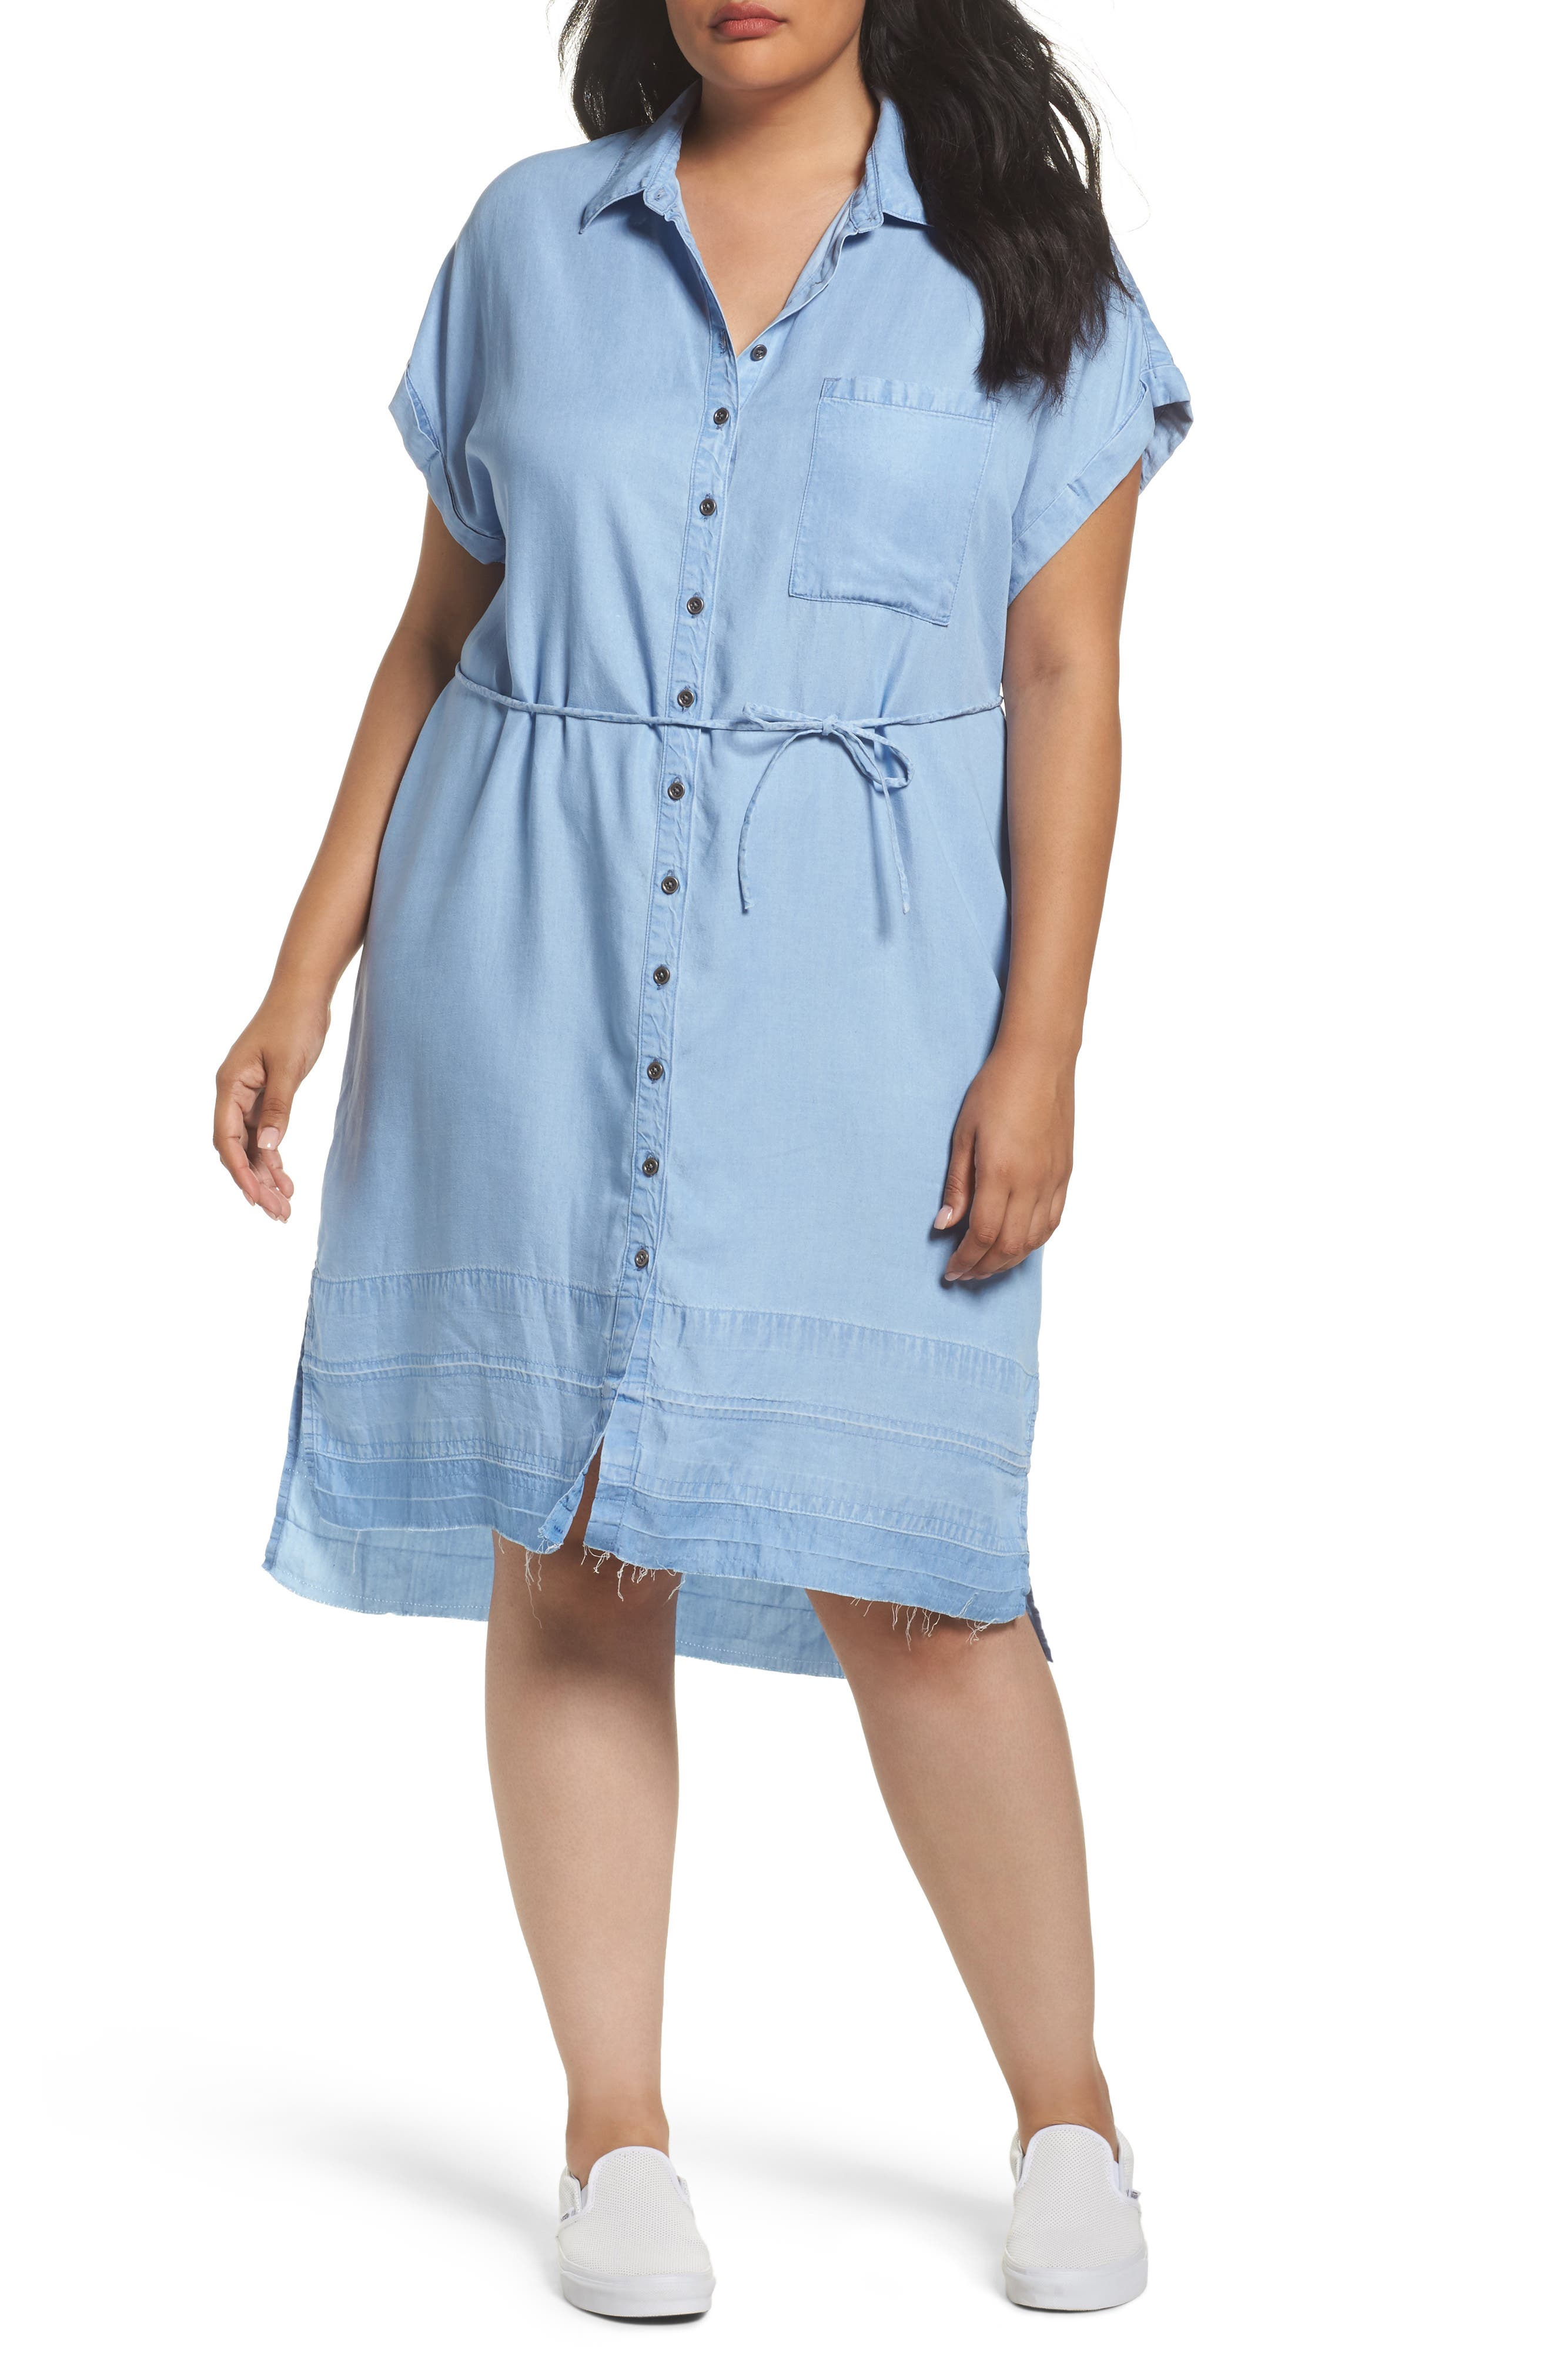 Alternate Image 1 Selected - Rebel Wilson x Angels Chambray Button-Up Shirtdress (Plus Size)